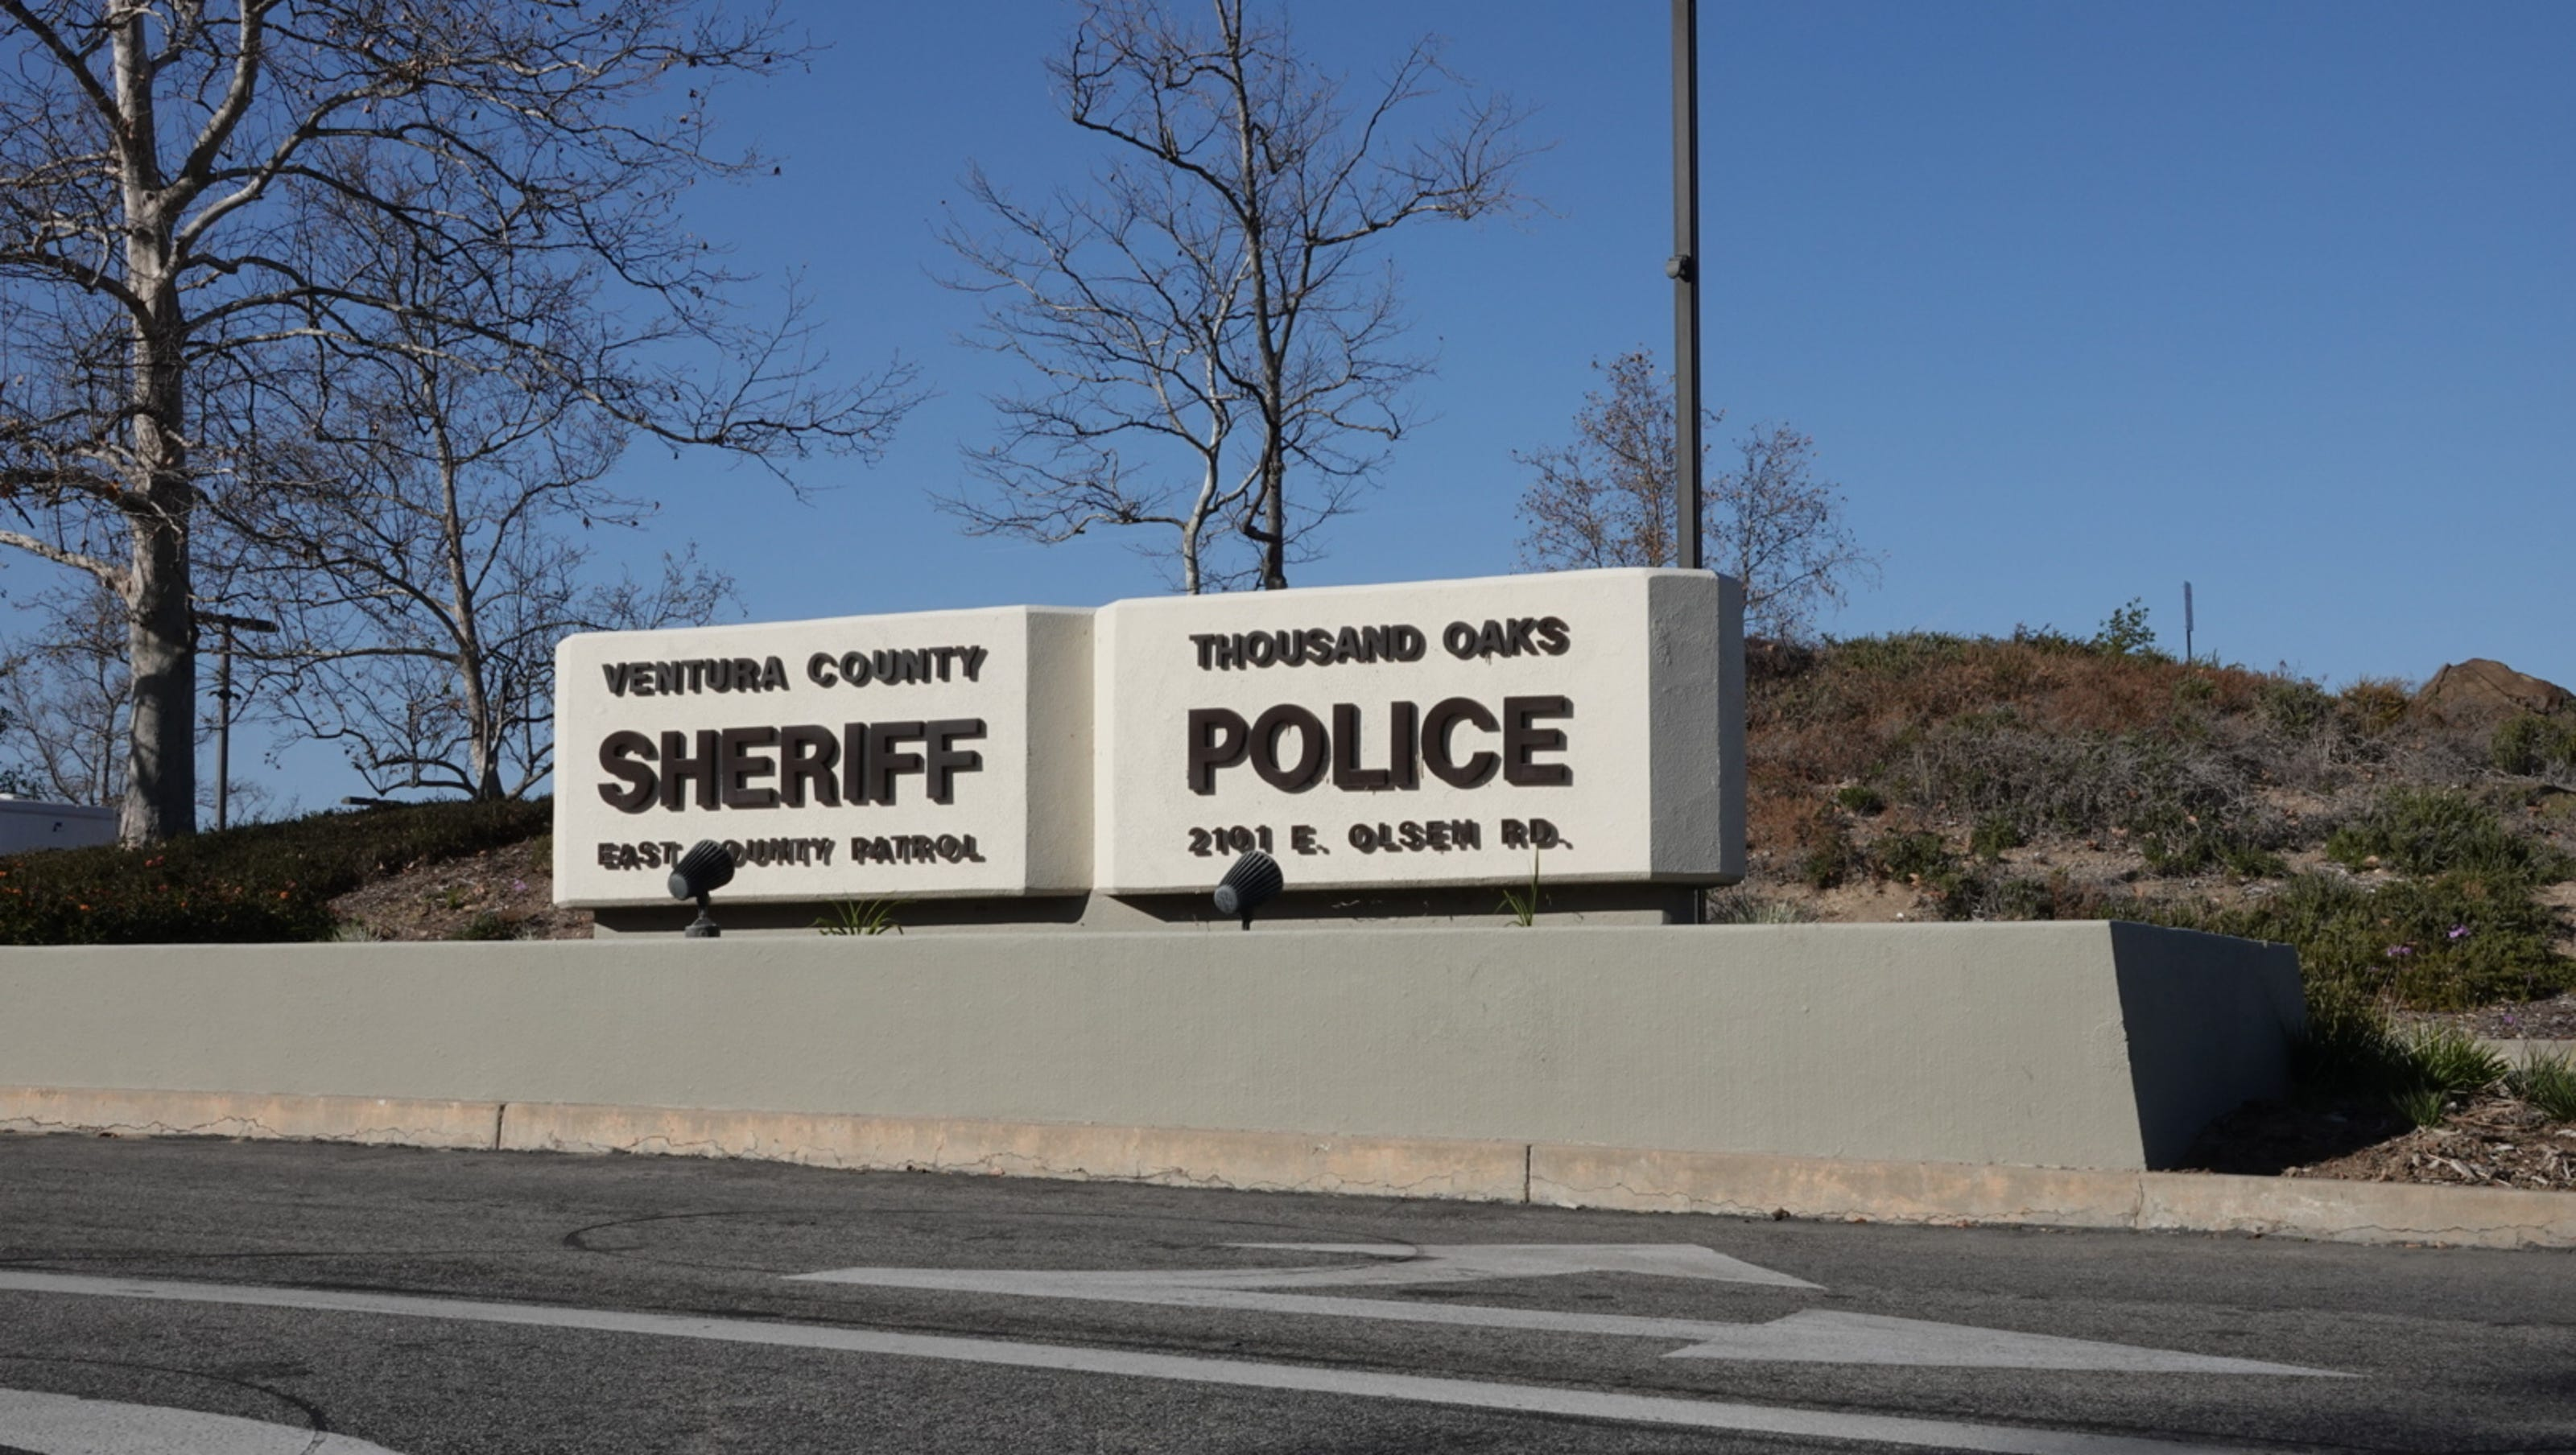 Man stabbed in Thousand Oaks